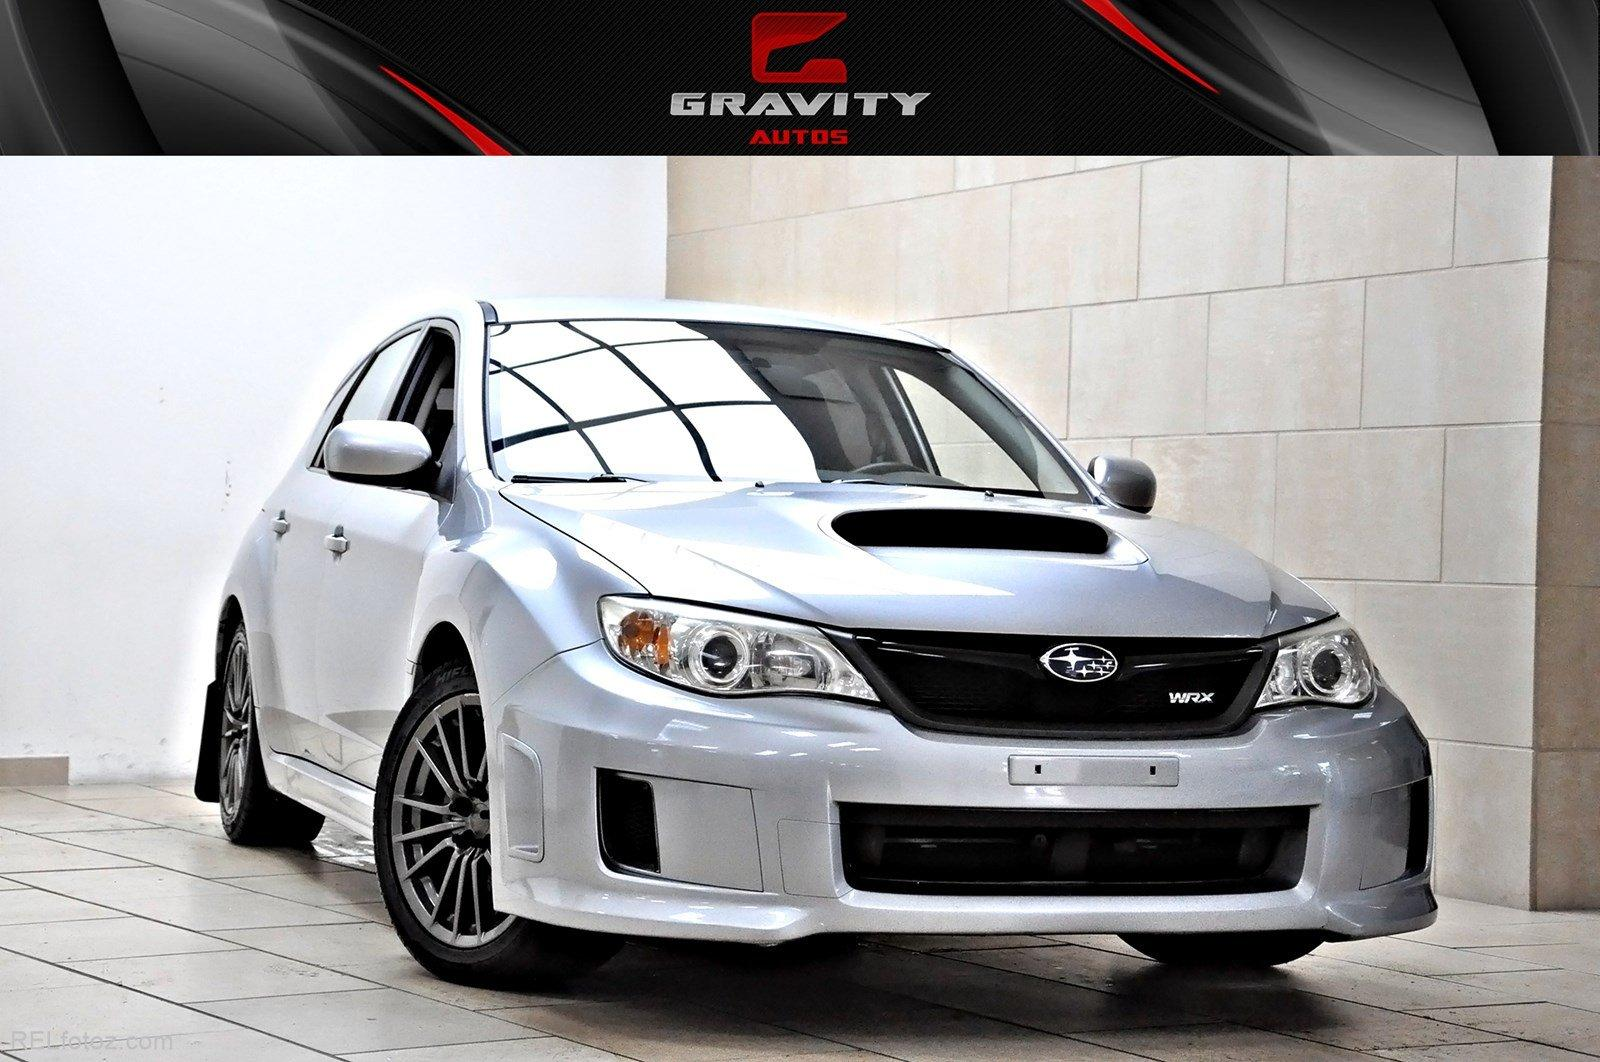 2012 subaru impreza wagon wrx wrx stock 243550 for sale near sandy springs ga ga subaru dealer. Black Bedroom Furniture Sets. Home Design Ideas